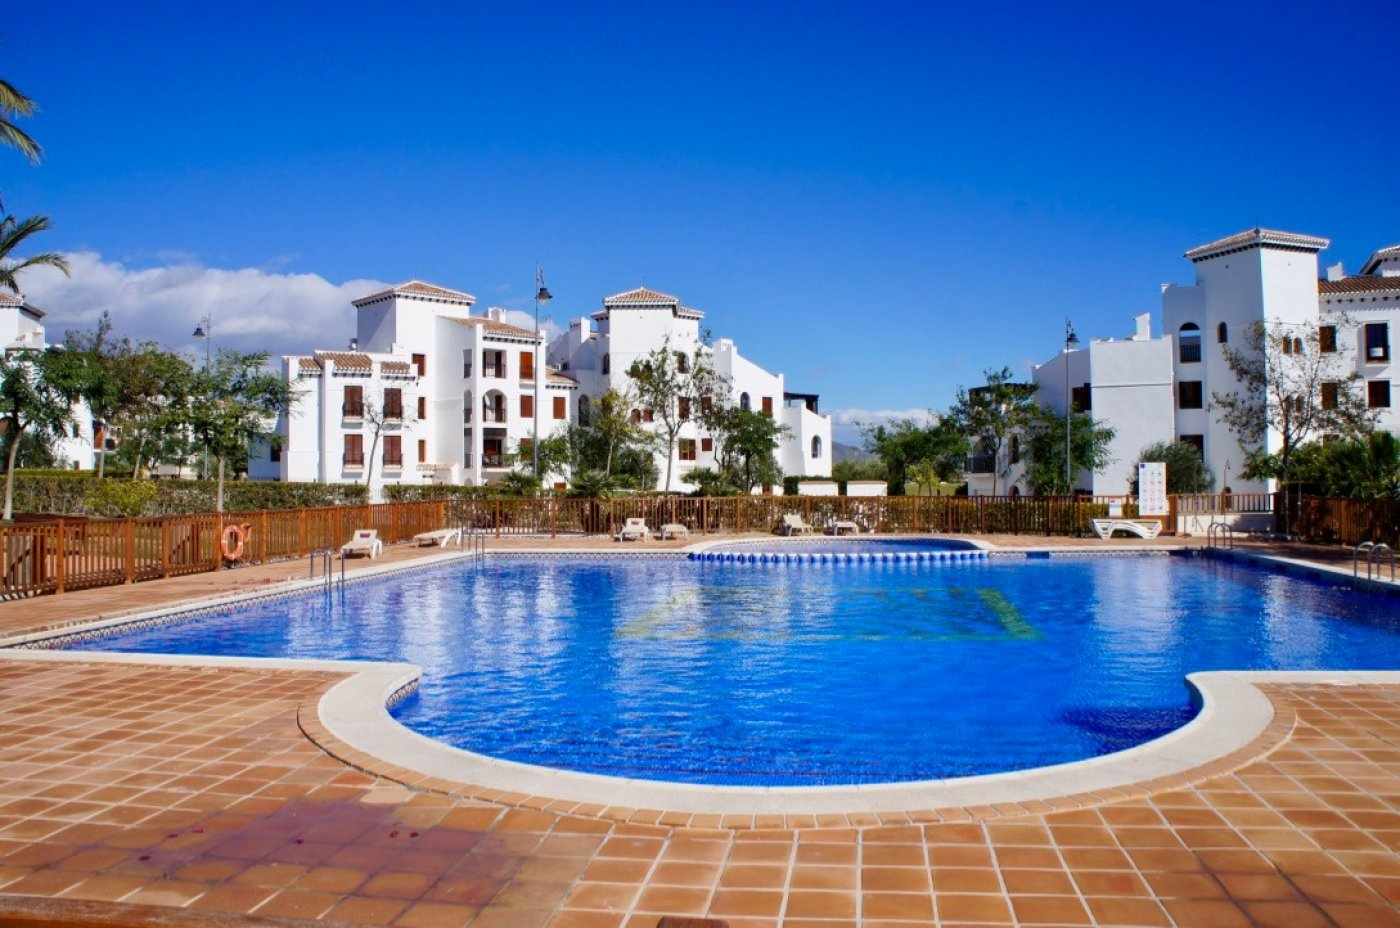 Image 1 Apartment ref 3265-03211 for sale in El Valle Golf Resort Spain - Quality Homes Costa Cálida